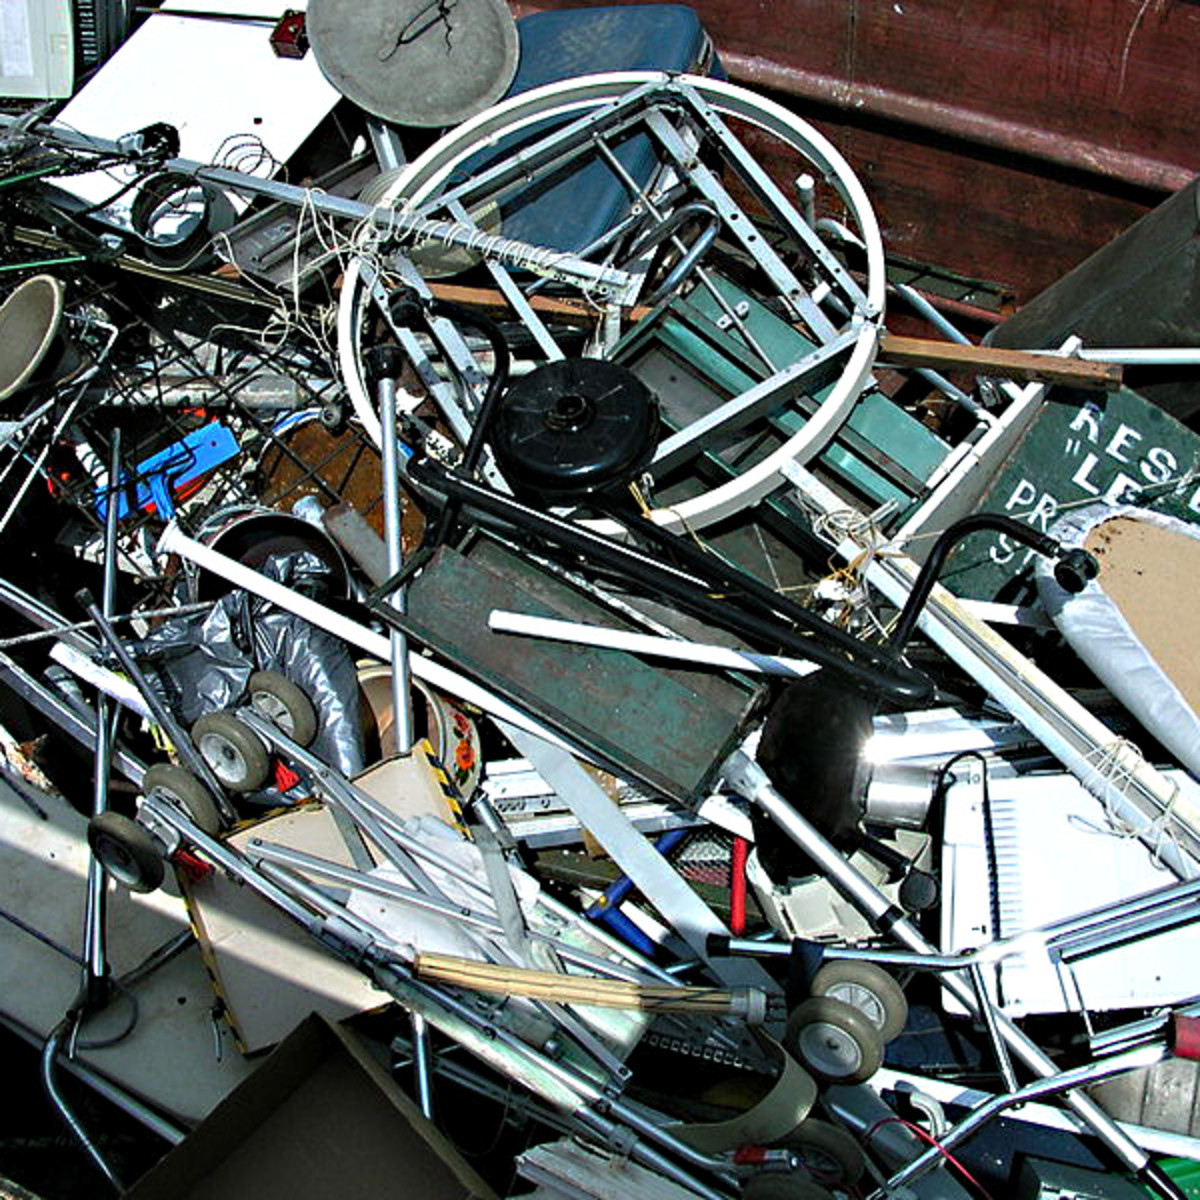 What a Load of Rubbish! 10 Good, Bad & Ugly Stories About Garbage